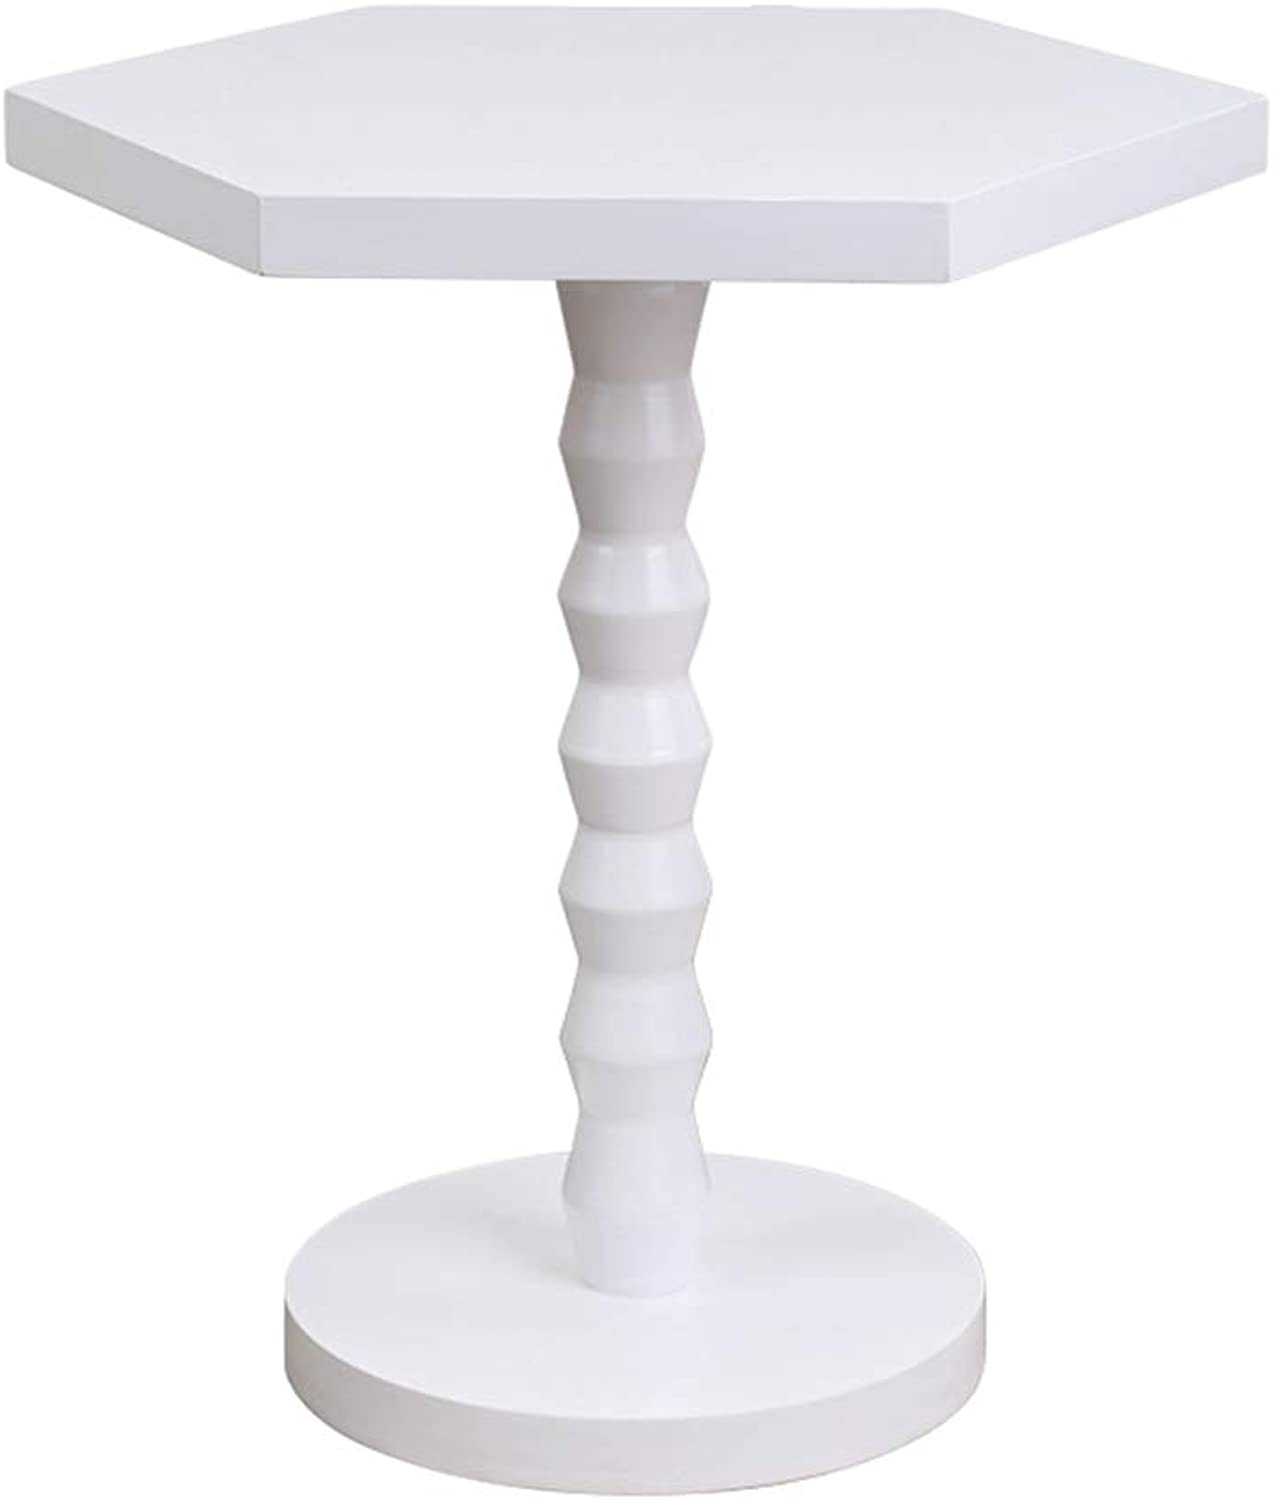 ZHIRONG Round Sofa Side Table Solid Wood Corner Table Coffee Table Bedside Table for Living Room Bedroom 42  51CM (color   White)